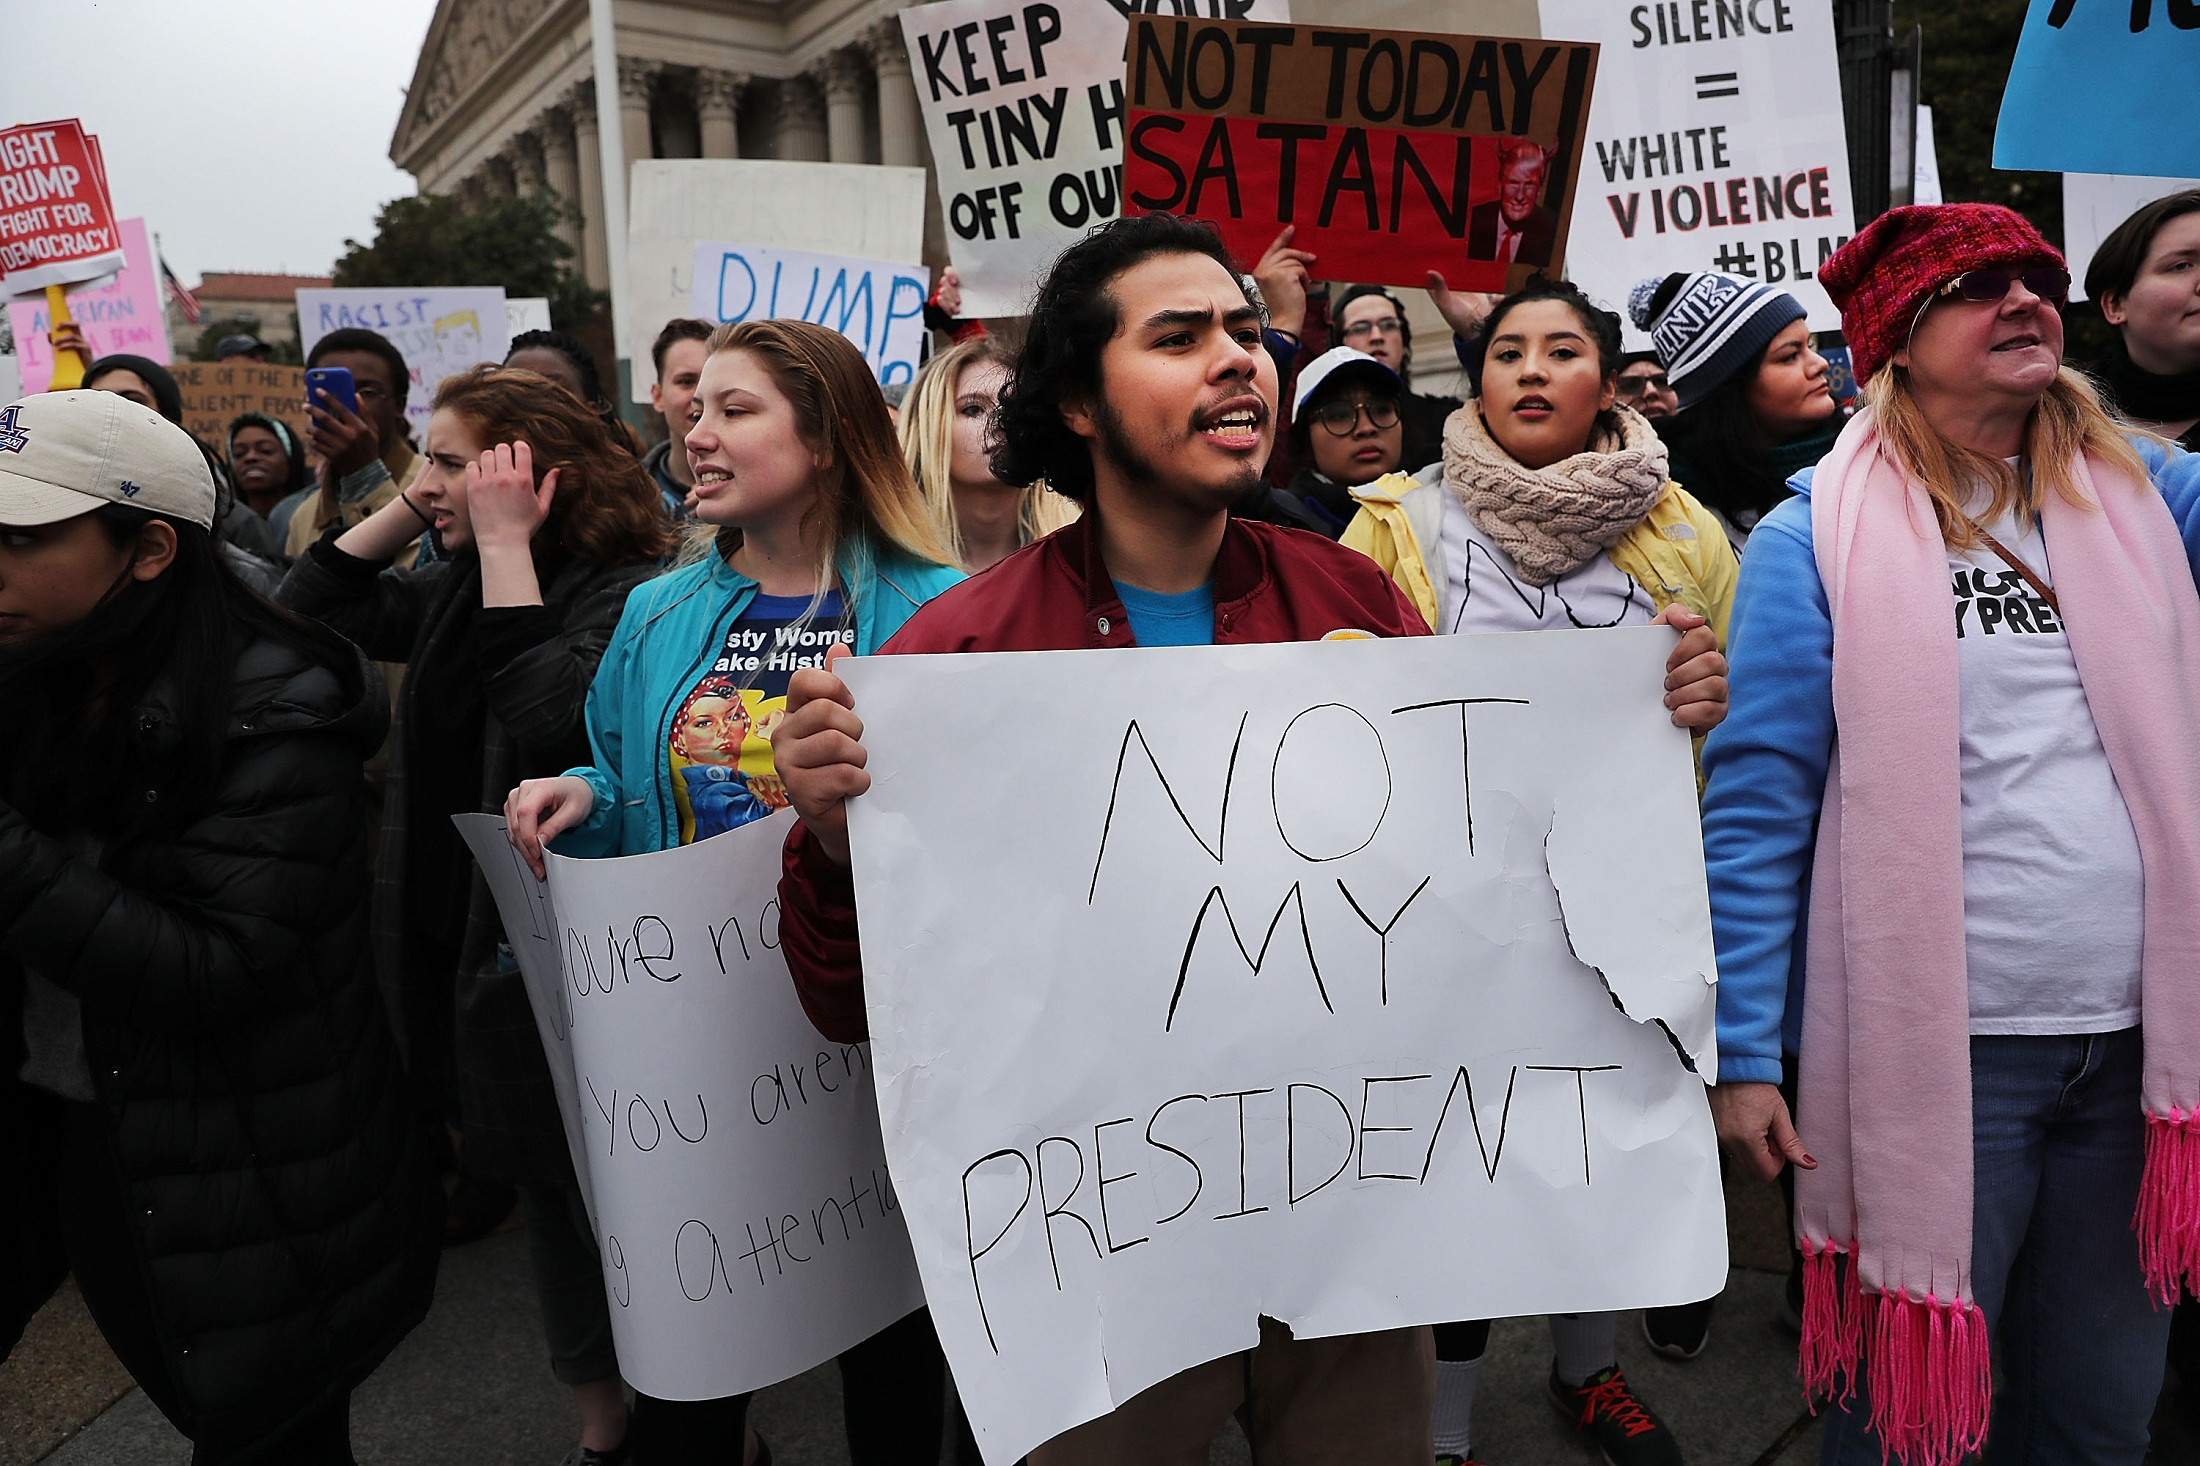 WASHINGTON, DC - JANUARY 20: Anti-Trump protesters demonstrate near the National Mall following the inauguration of President Donald Trump on January 20, 2017 in Washington, DC. Washington and the entire world have watched the transfer of the United States presidency from Barack Obama to Donald Trump, the 45th president.   Spencer Platt/Getty Images/AFP